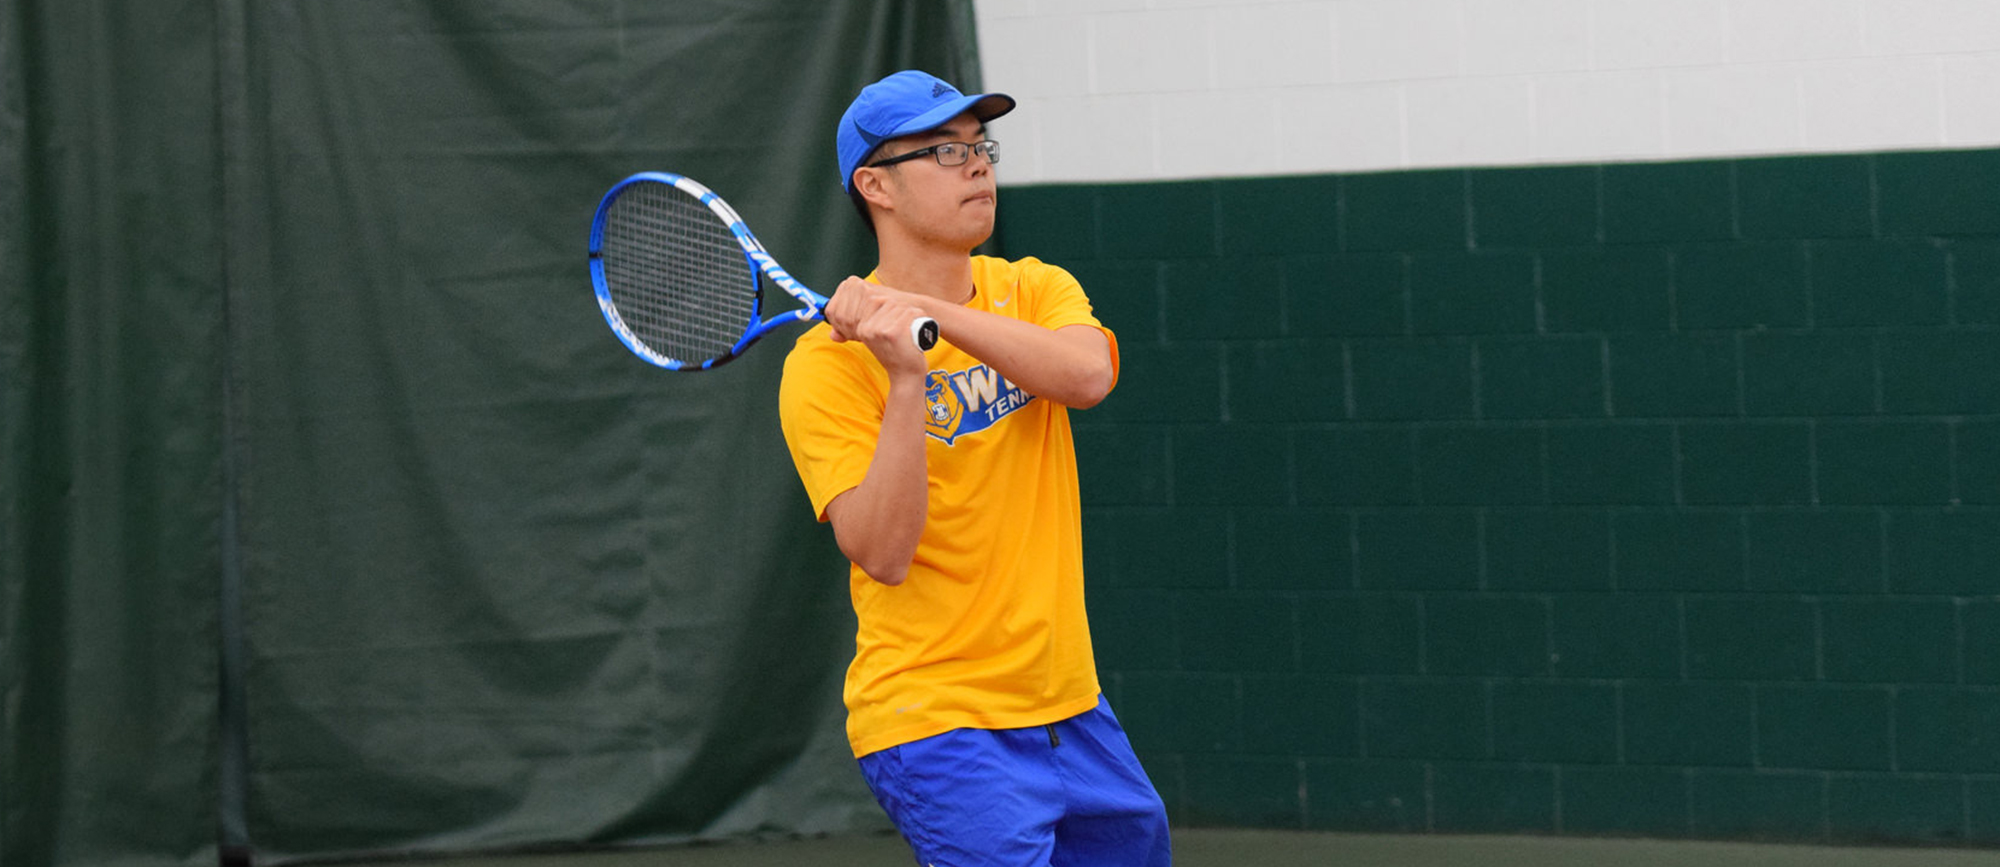 Junior Michael Tran won at No. 5 singles in Western New England's 8-1 win over Brooklyn College in Orlando on Friday. (Photo by Rachael Margossian)